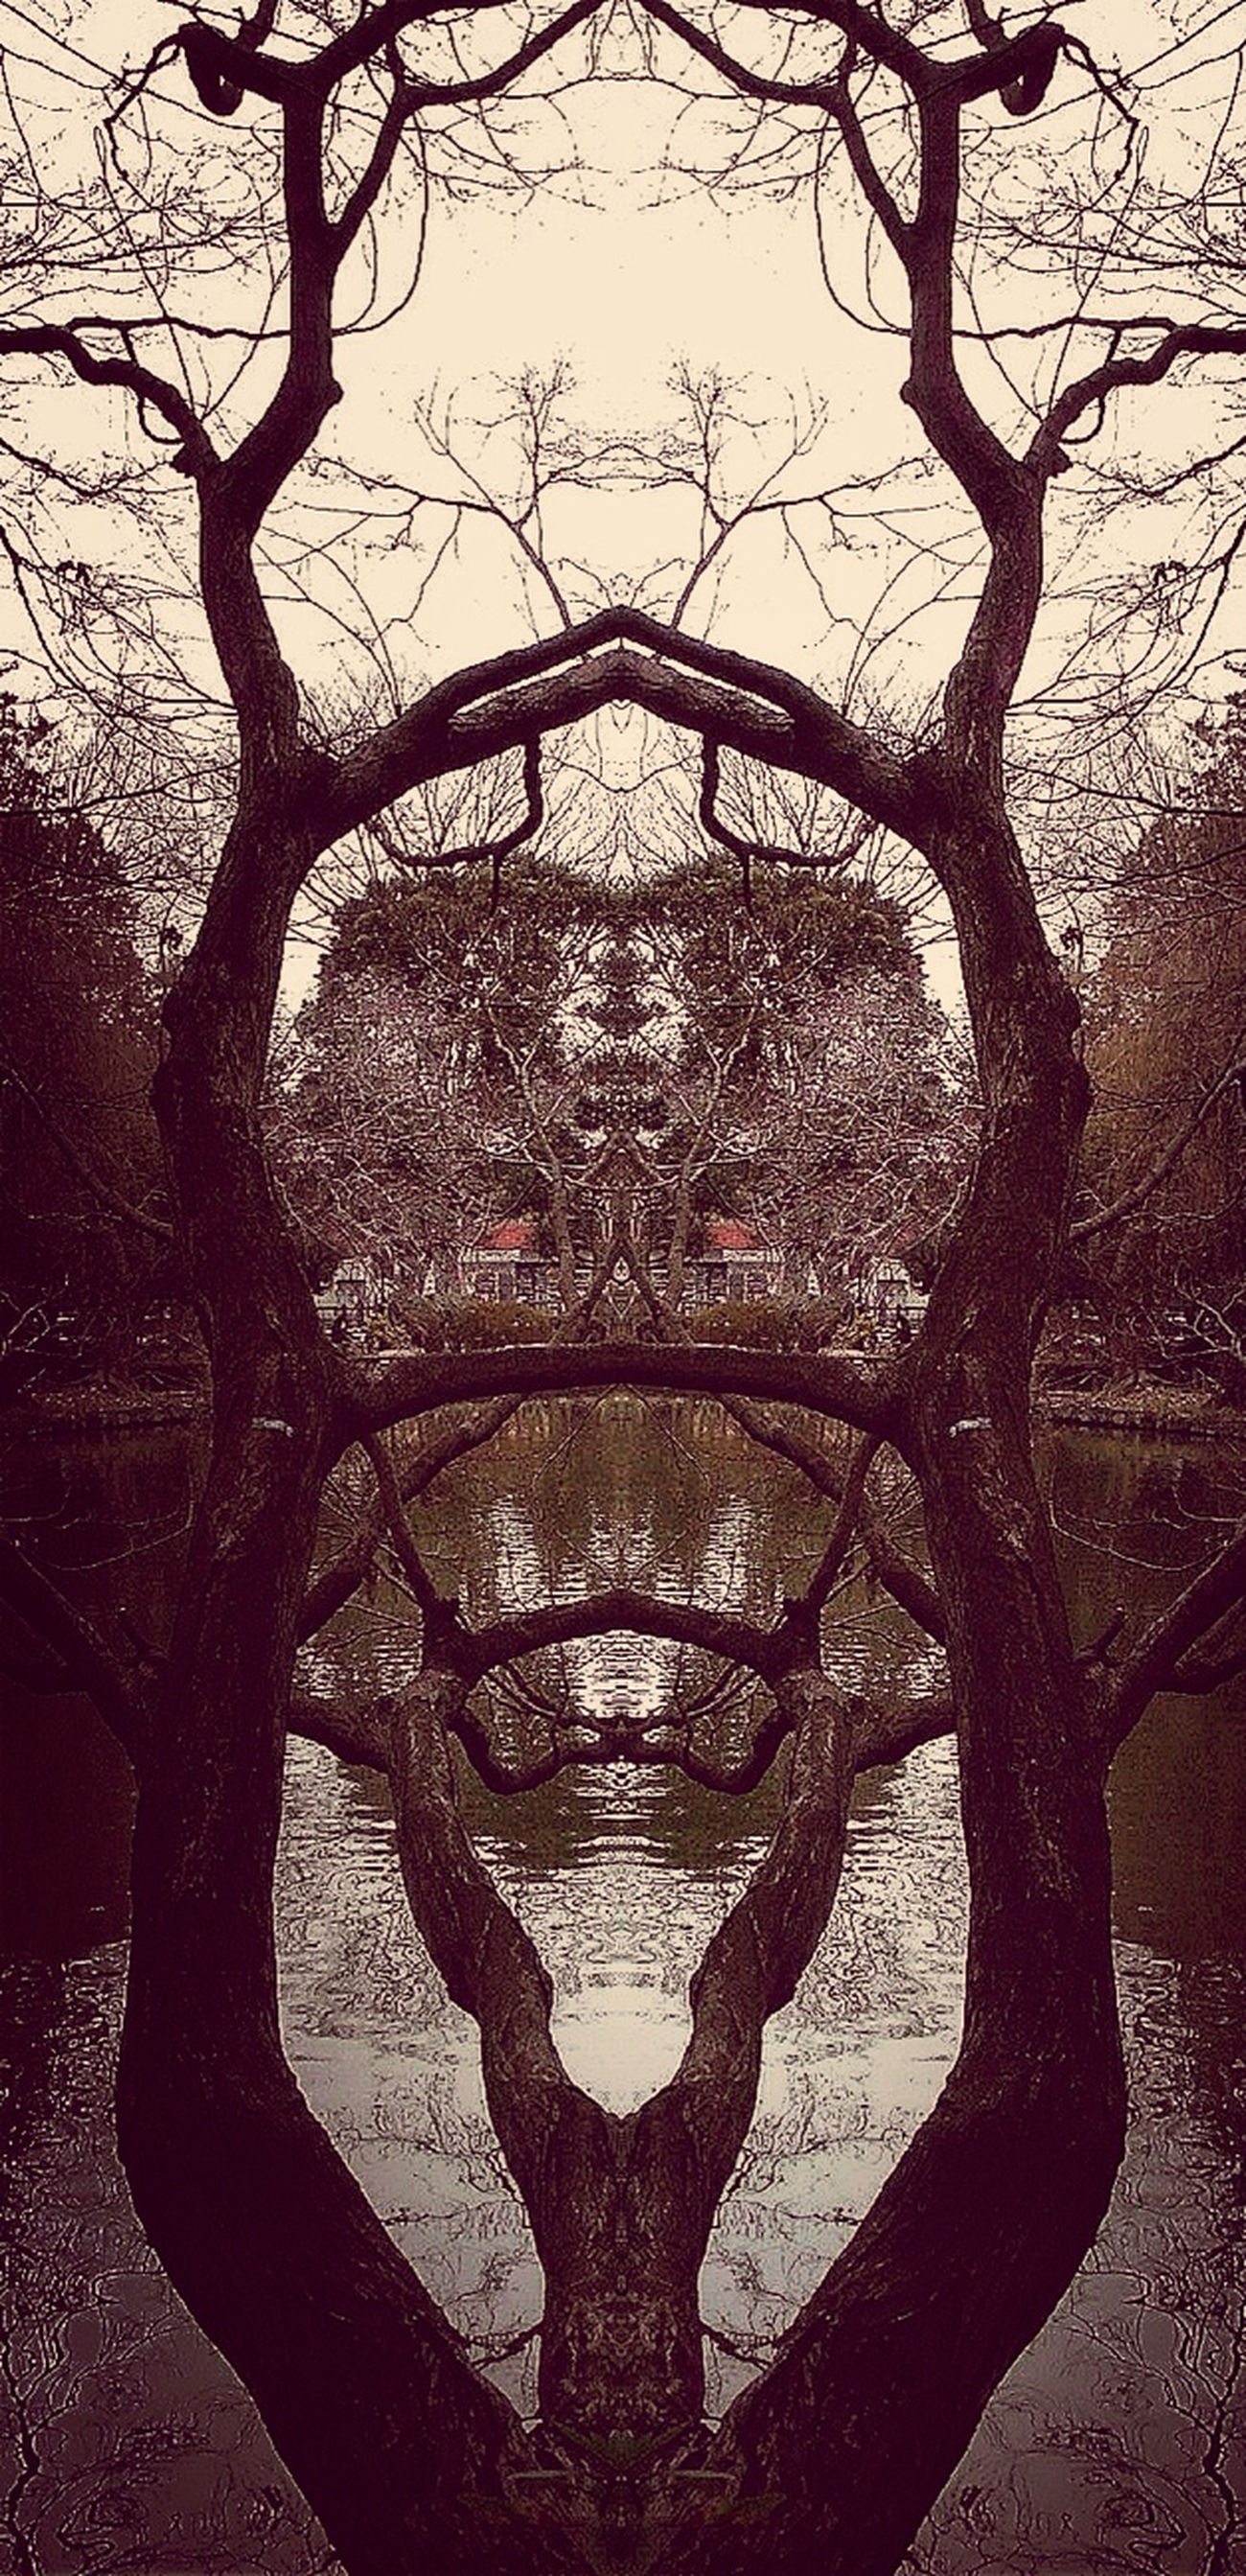 Reflection